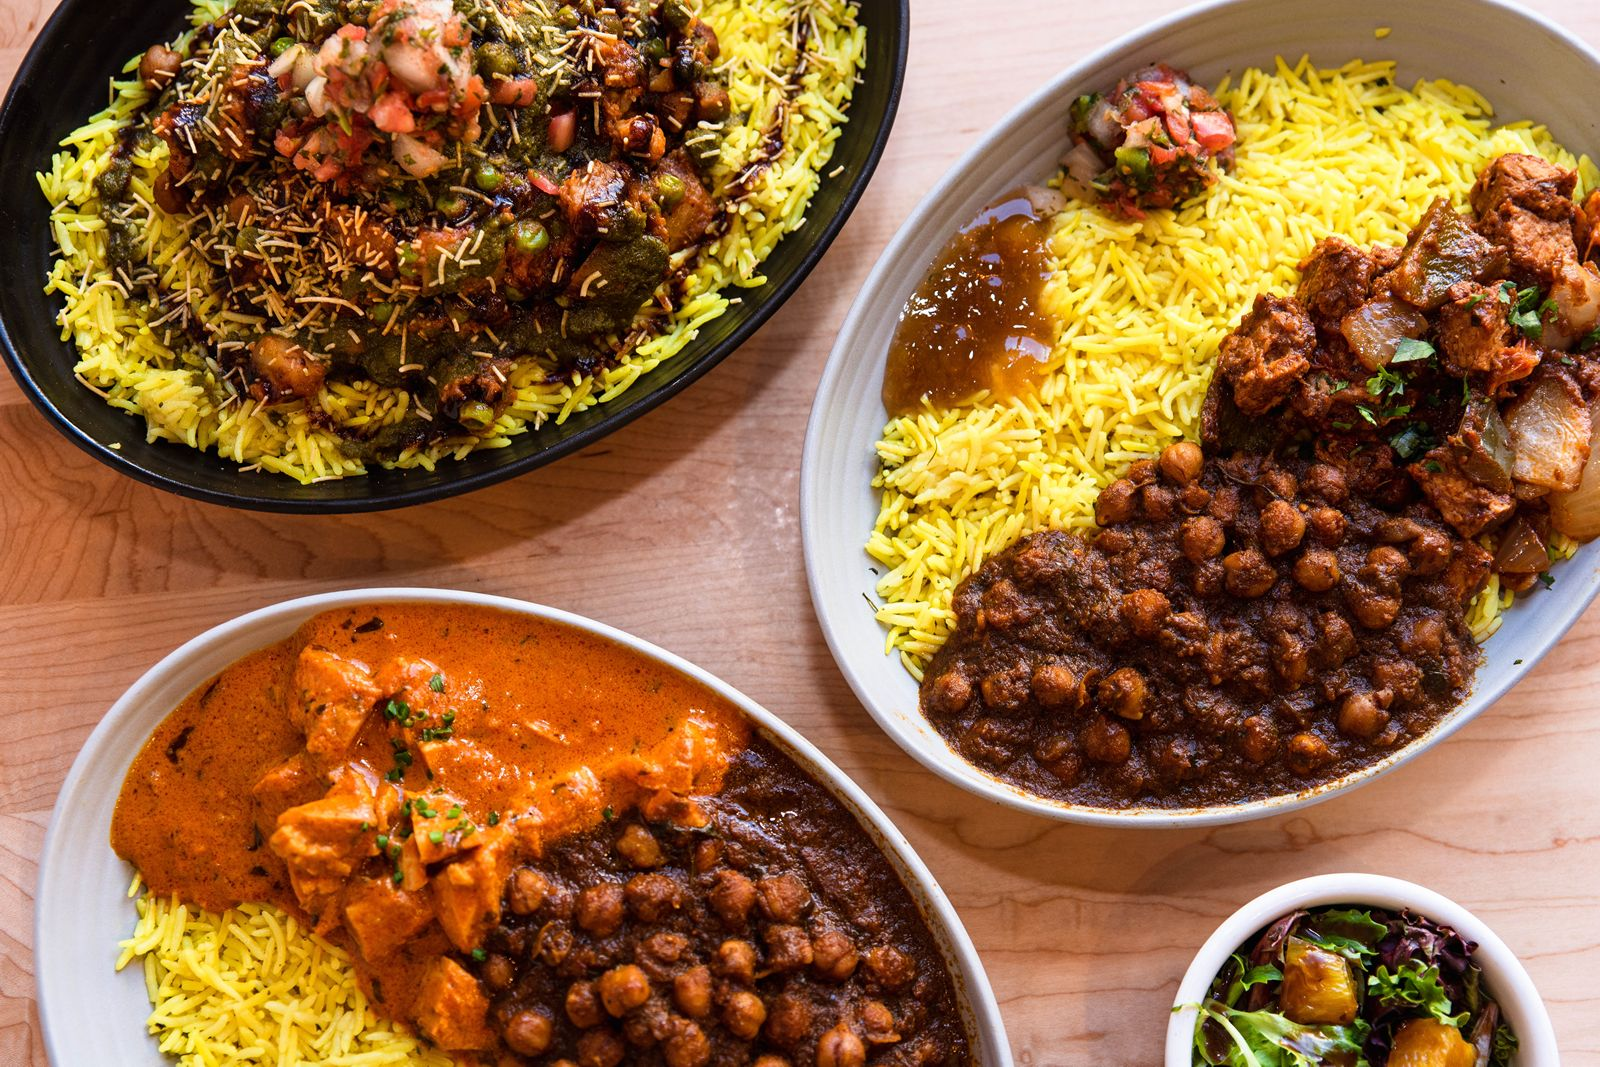 Curry Up Now, the nation's largest and fastest growing Indian fast casual concept, has launched on Goldbelly to deliver their innovative Indian eats to hungry fans across the country.